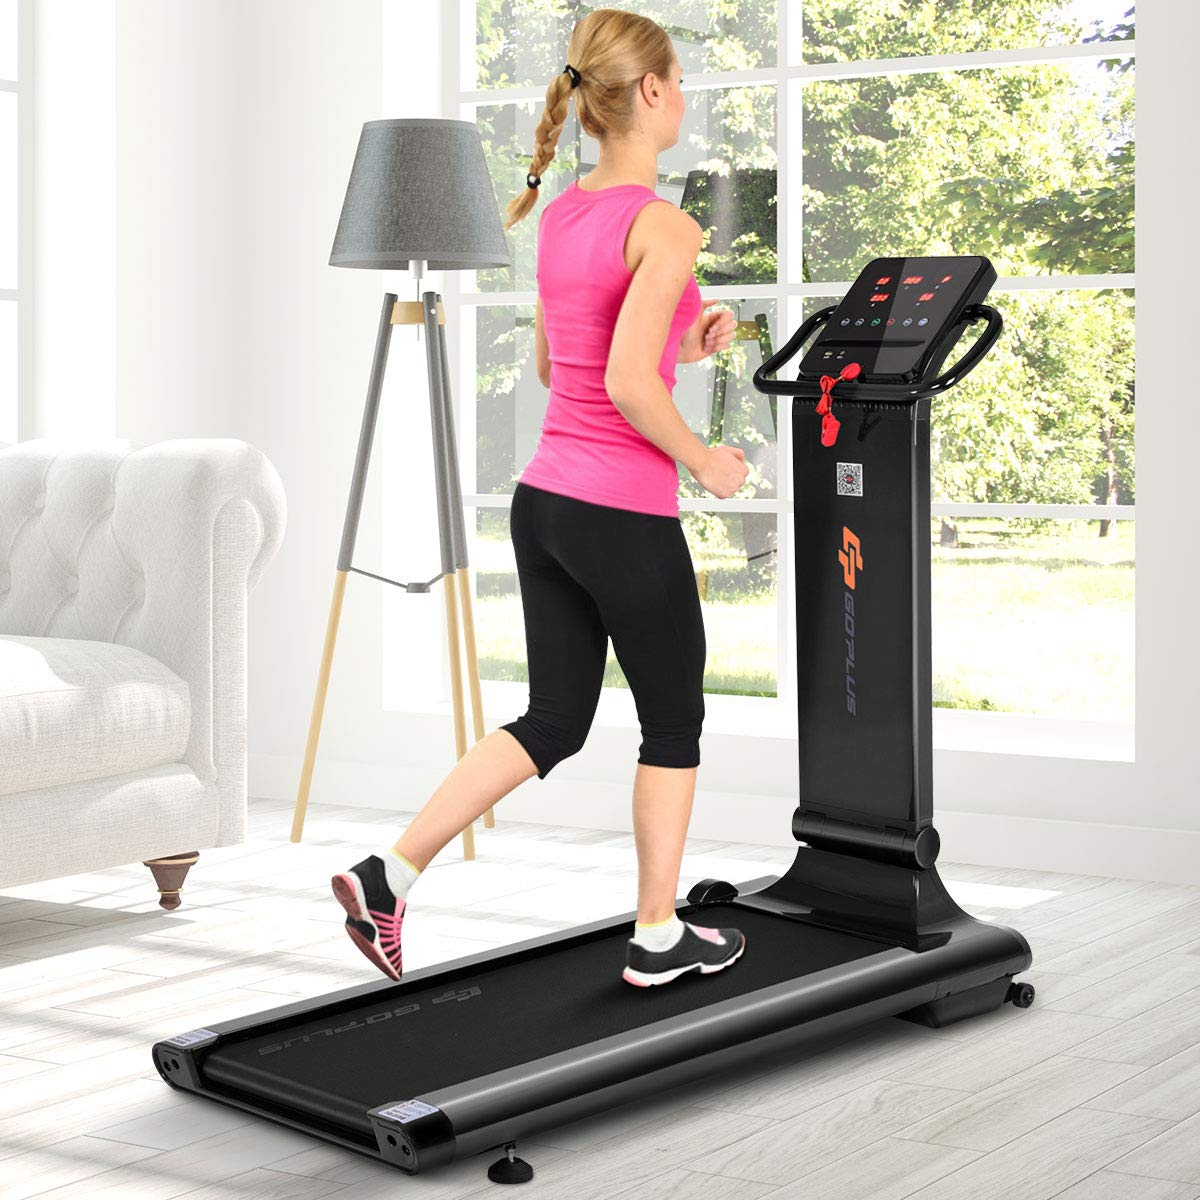 Goplus 1.5HP Electric Folding Treadmill Portable Motorized Running Machine Home Gym Cardio Fitness w/App (Black) by Goplus (Image #3)